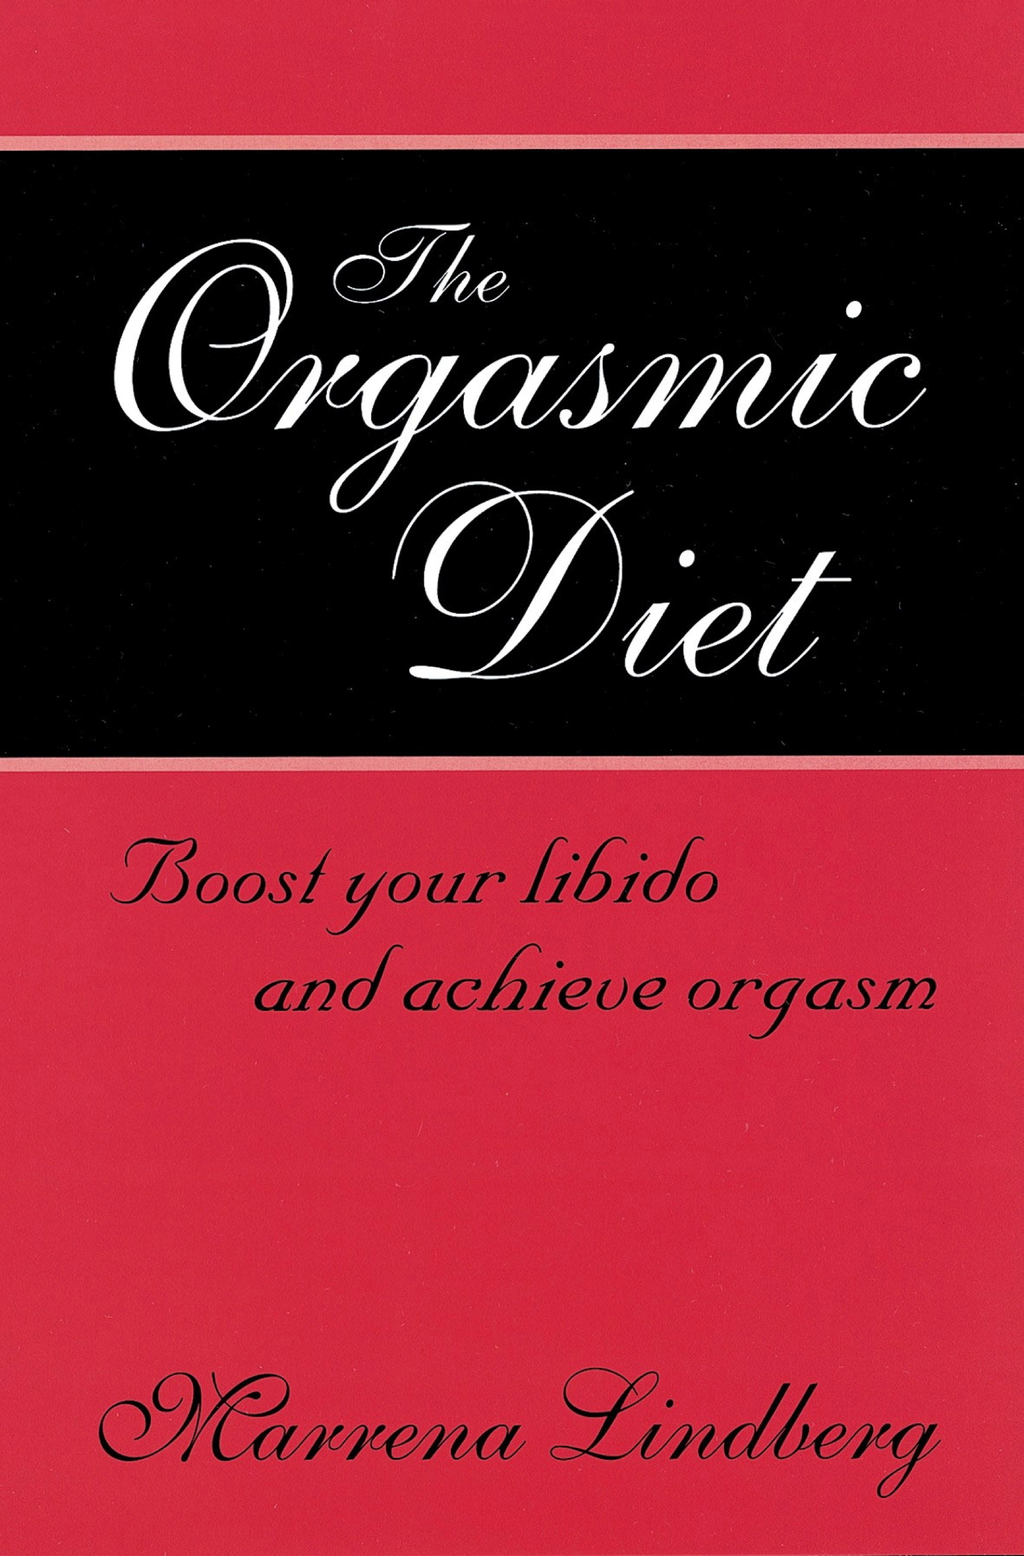 The Orgasmic Diet Boost your libido and achieve orgasm